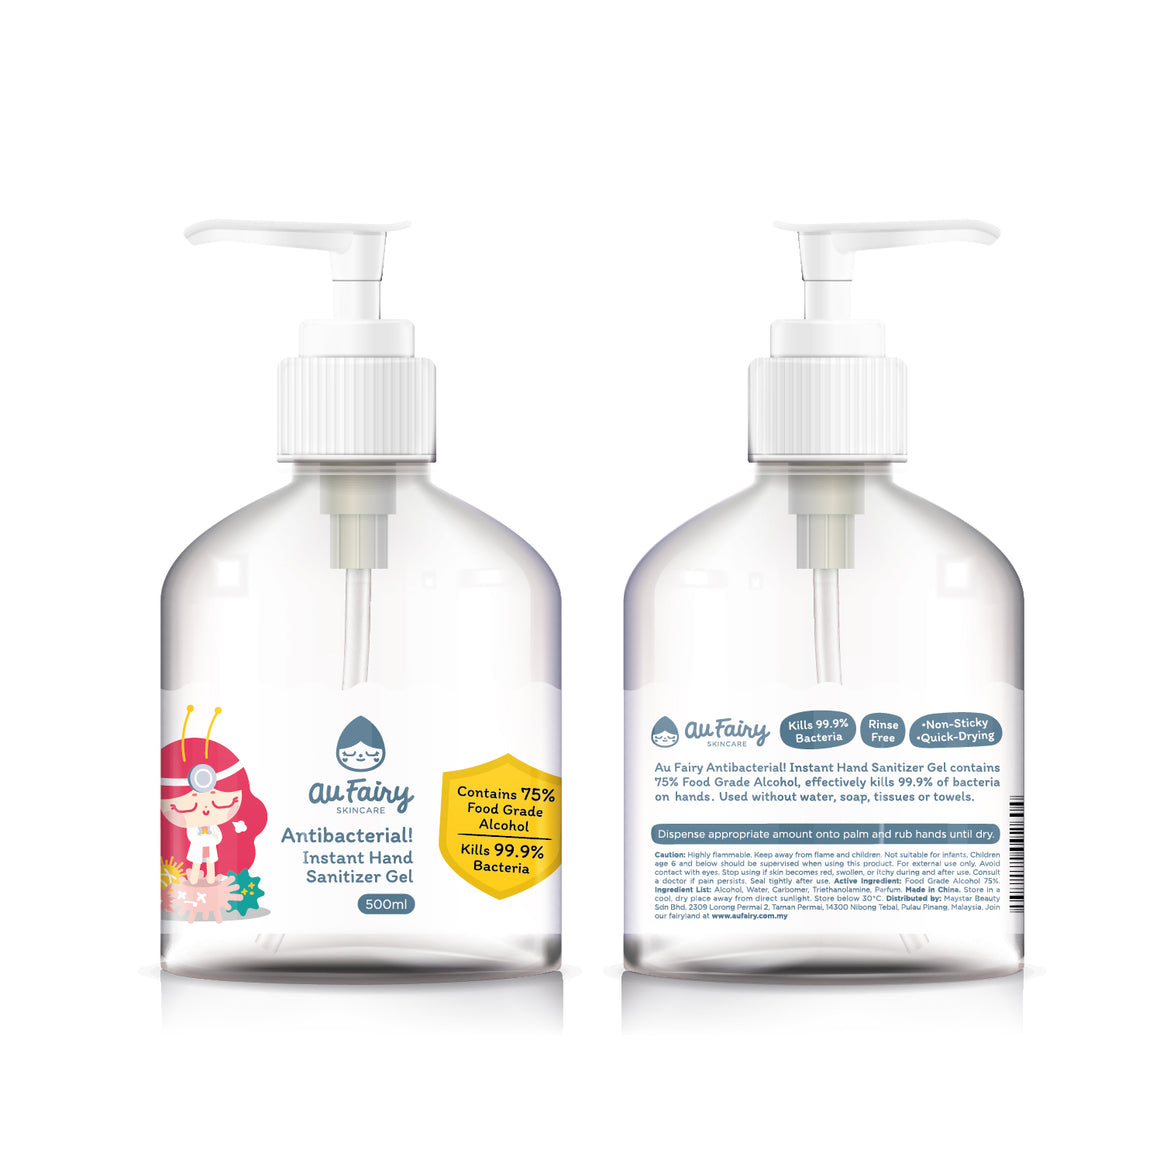 Au Fairy Antibacterial! Instant Hand Sanitizer Gel - 500ml